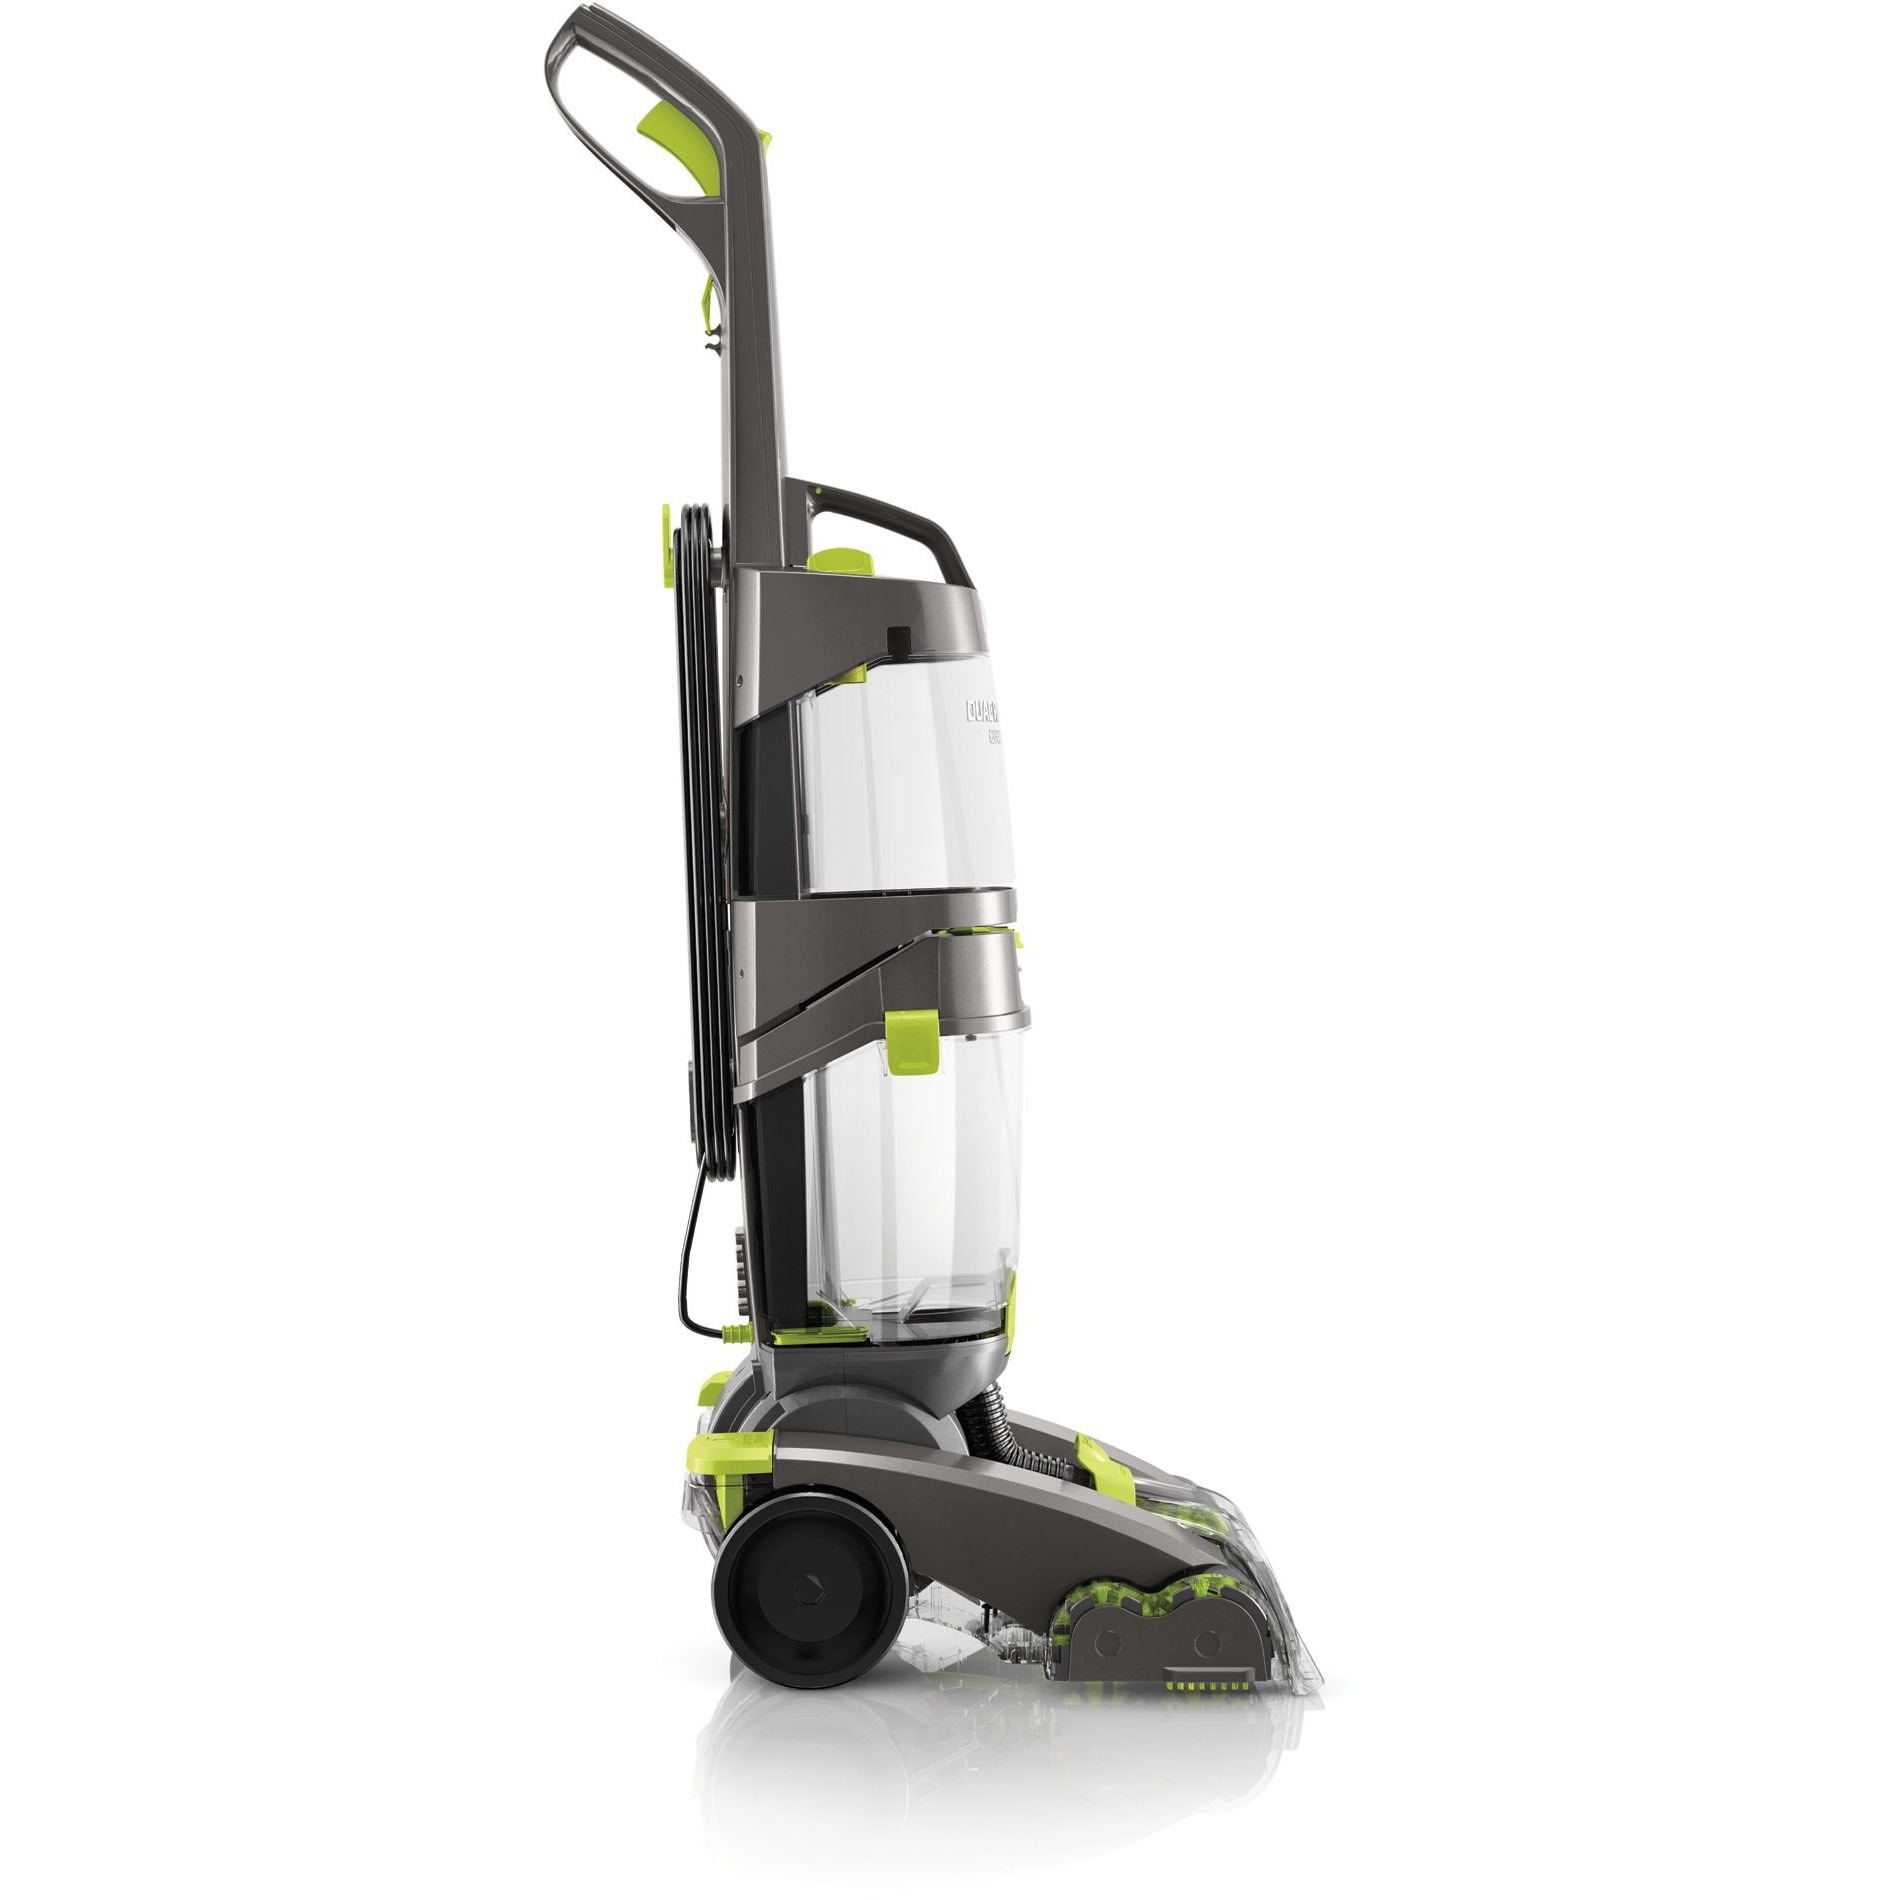 hoover dual power max carpet washer fh51000 instructions